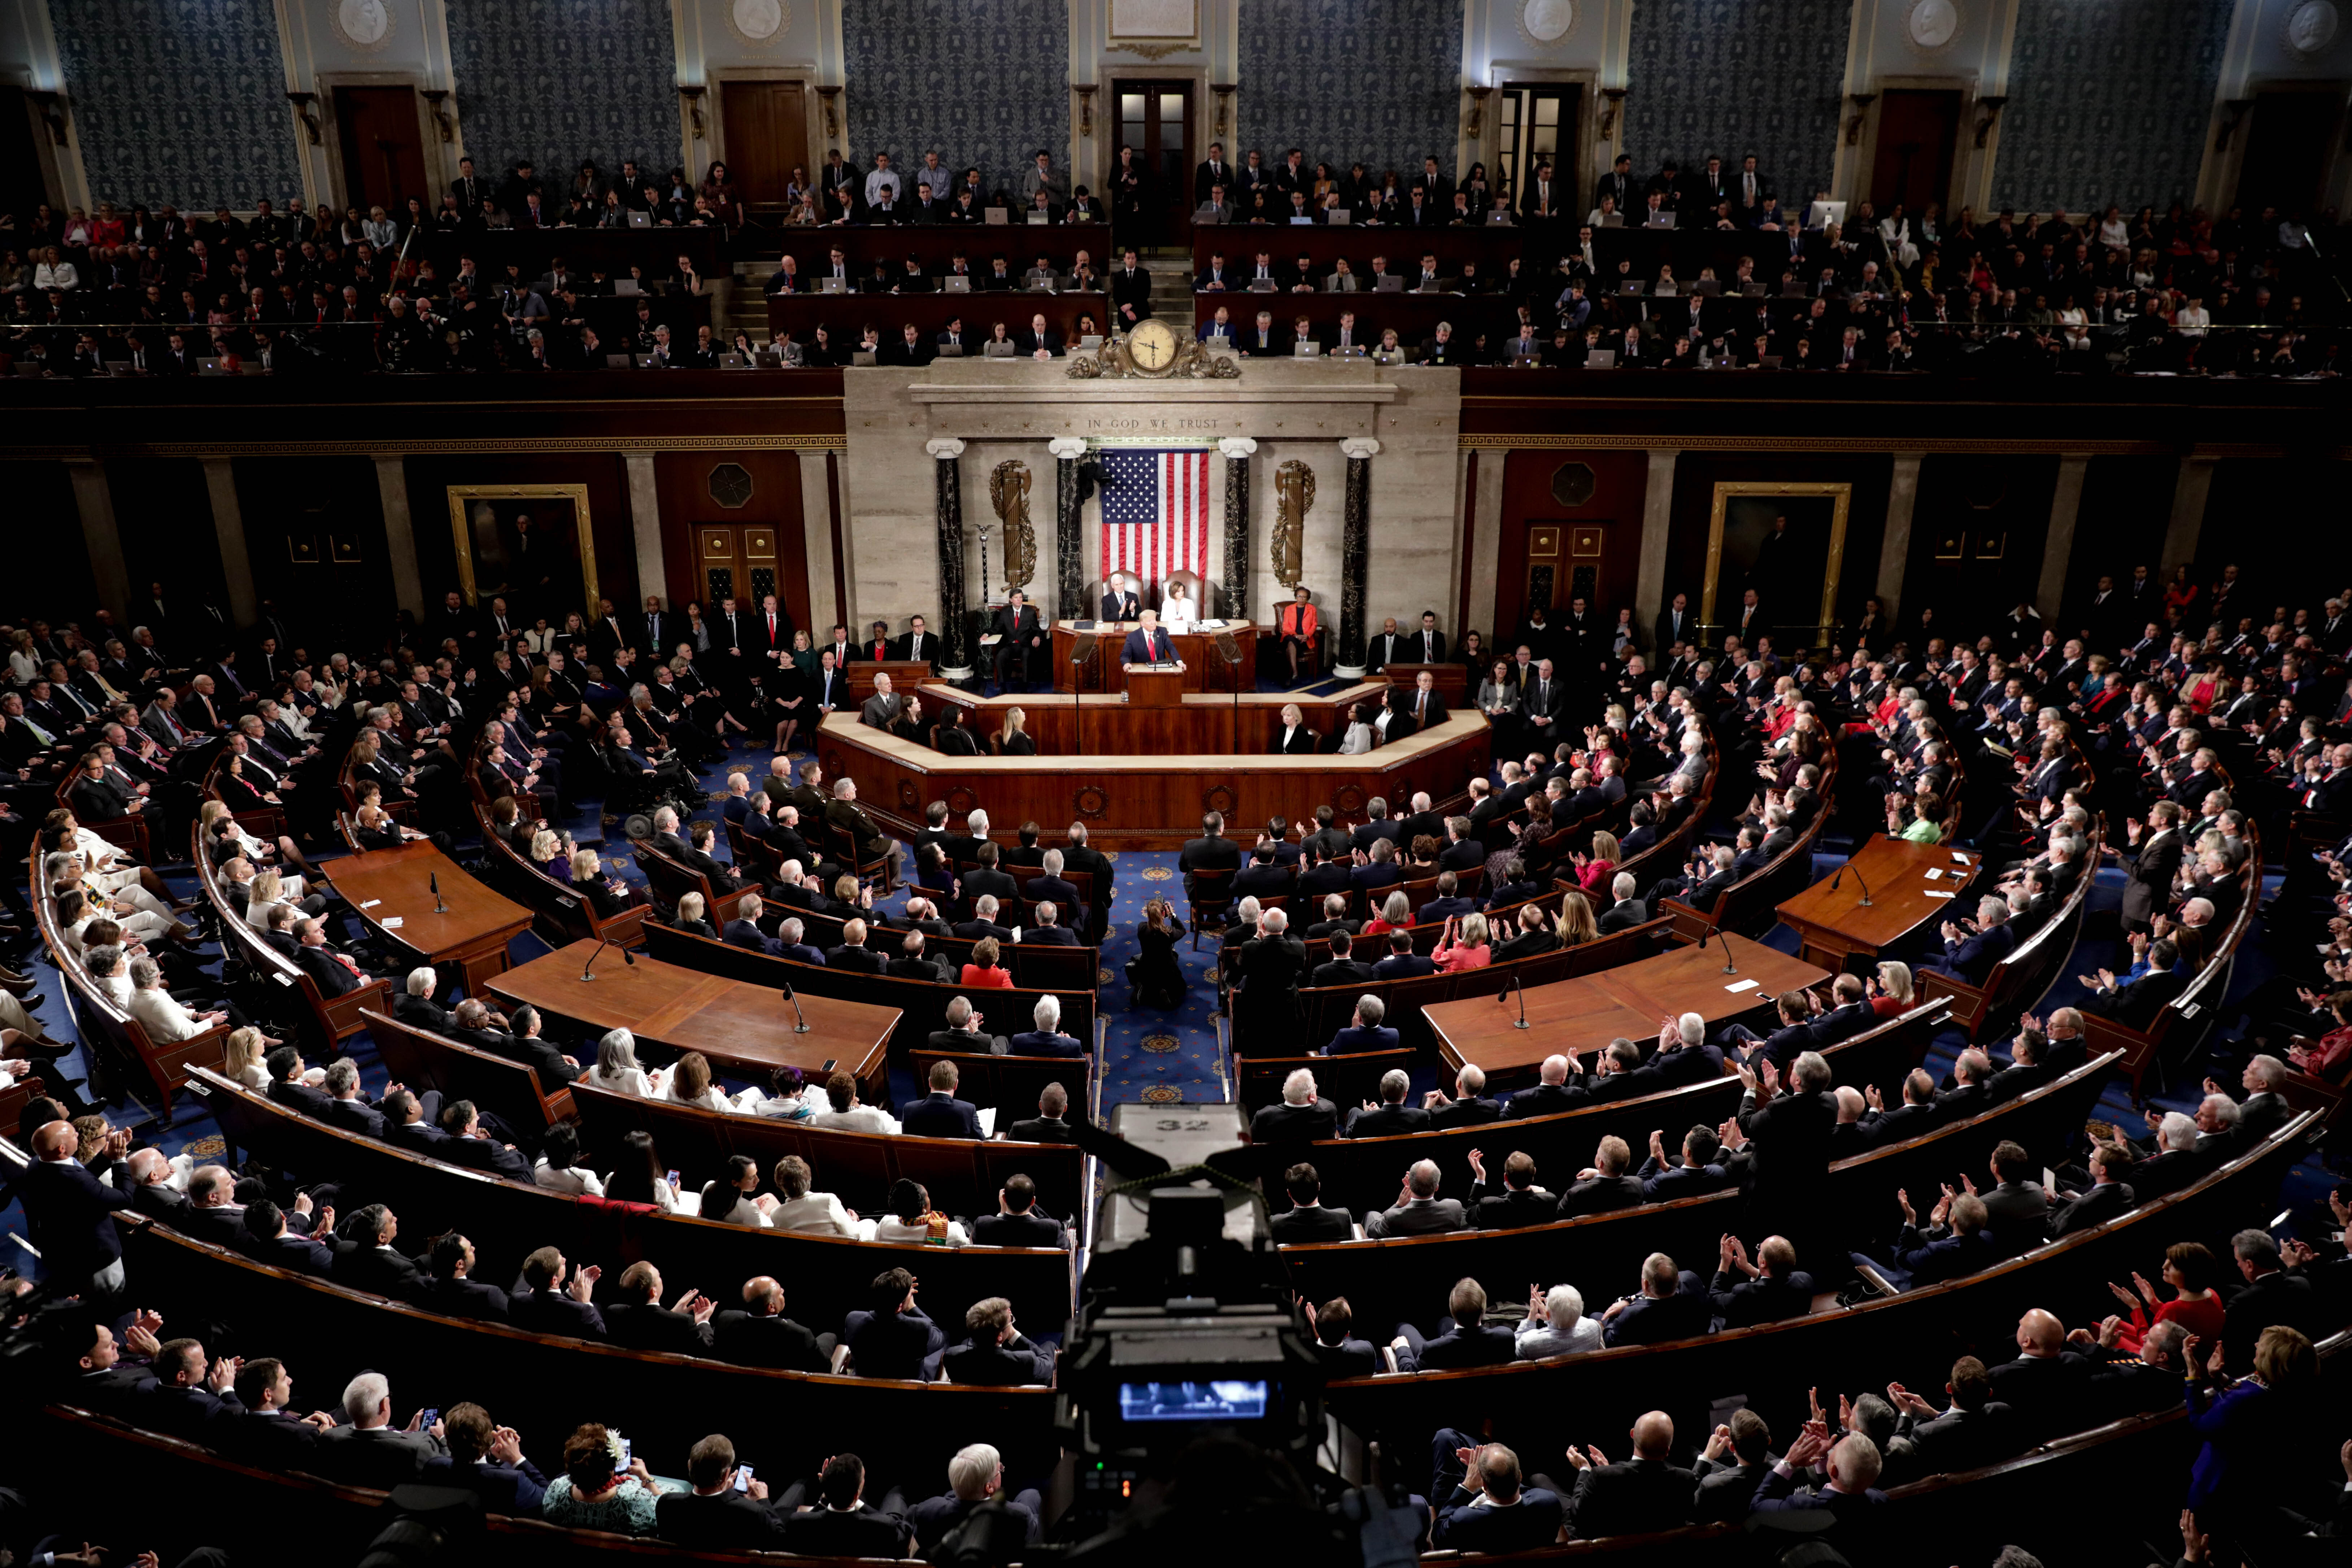 President Donald Trump delivers his State of the Union address at the US Capitol in Washington DC, United States on February 04, 2020. (Yasin Ozturk/Anadolu Agency via Getty Images)